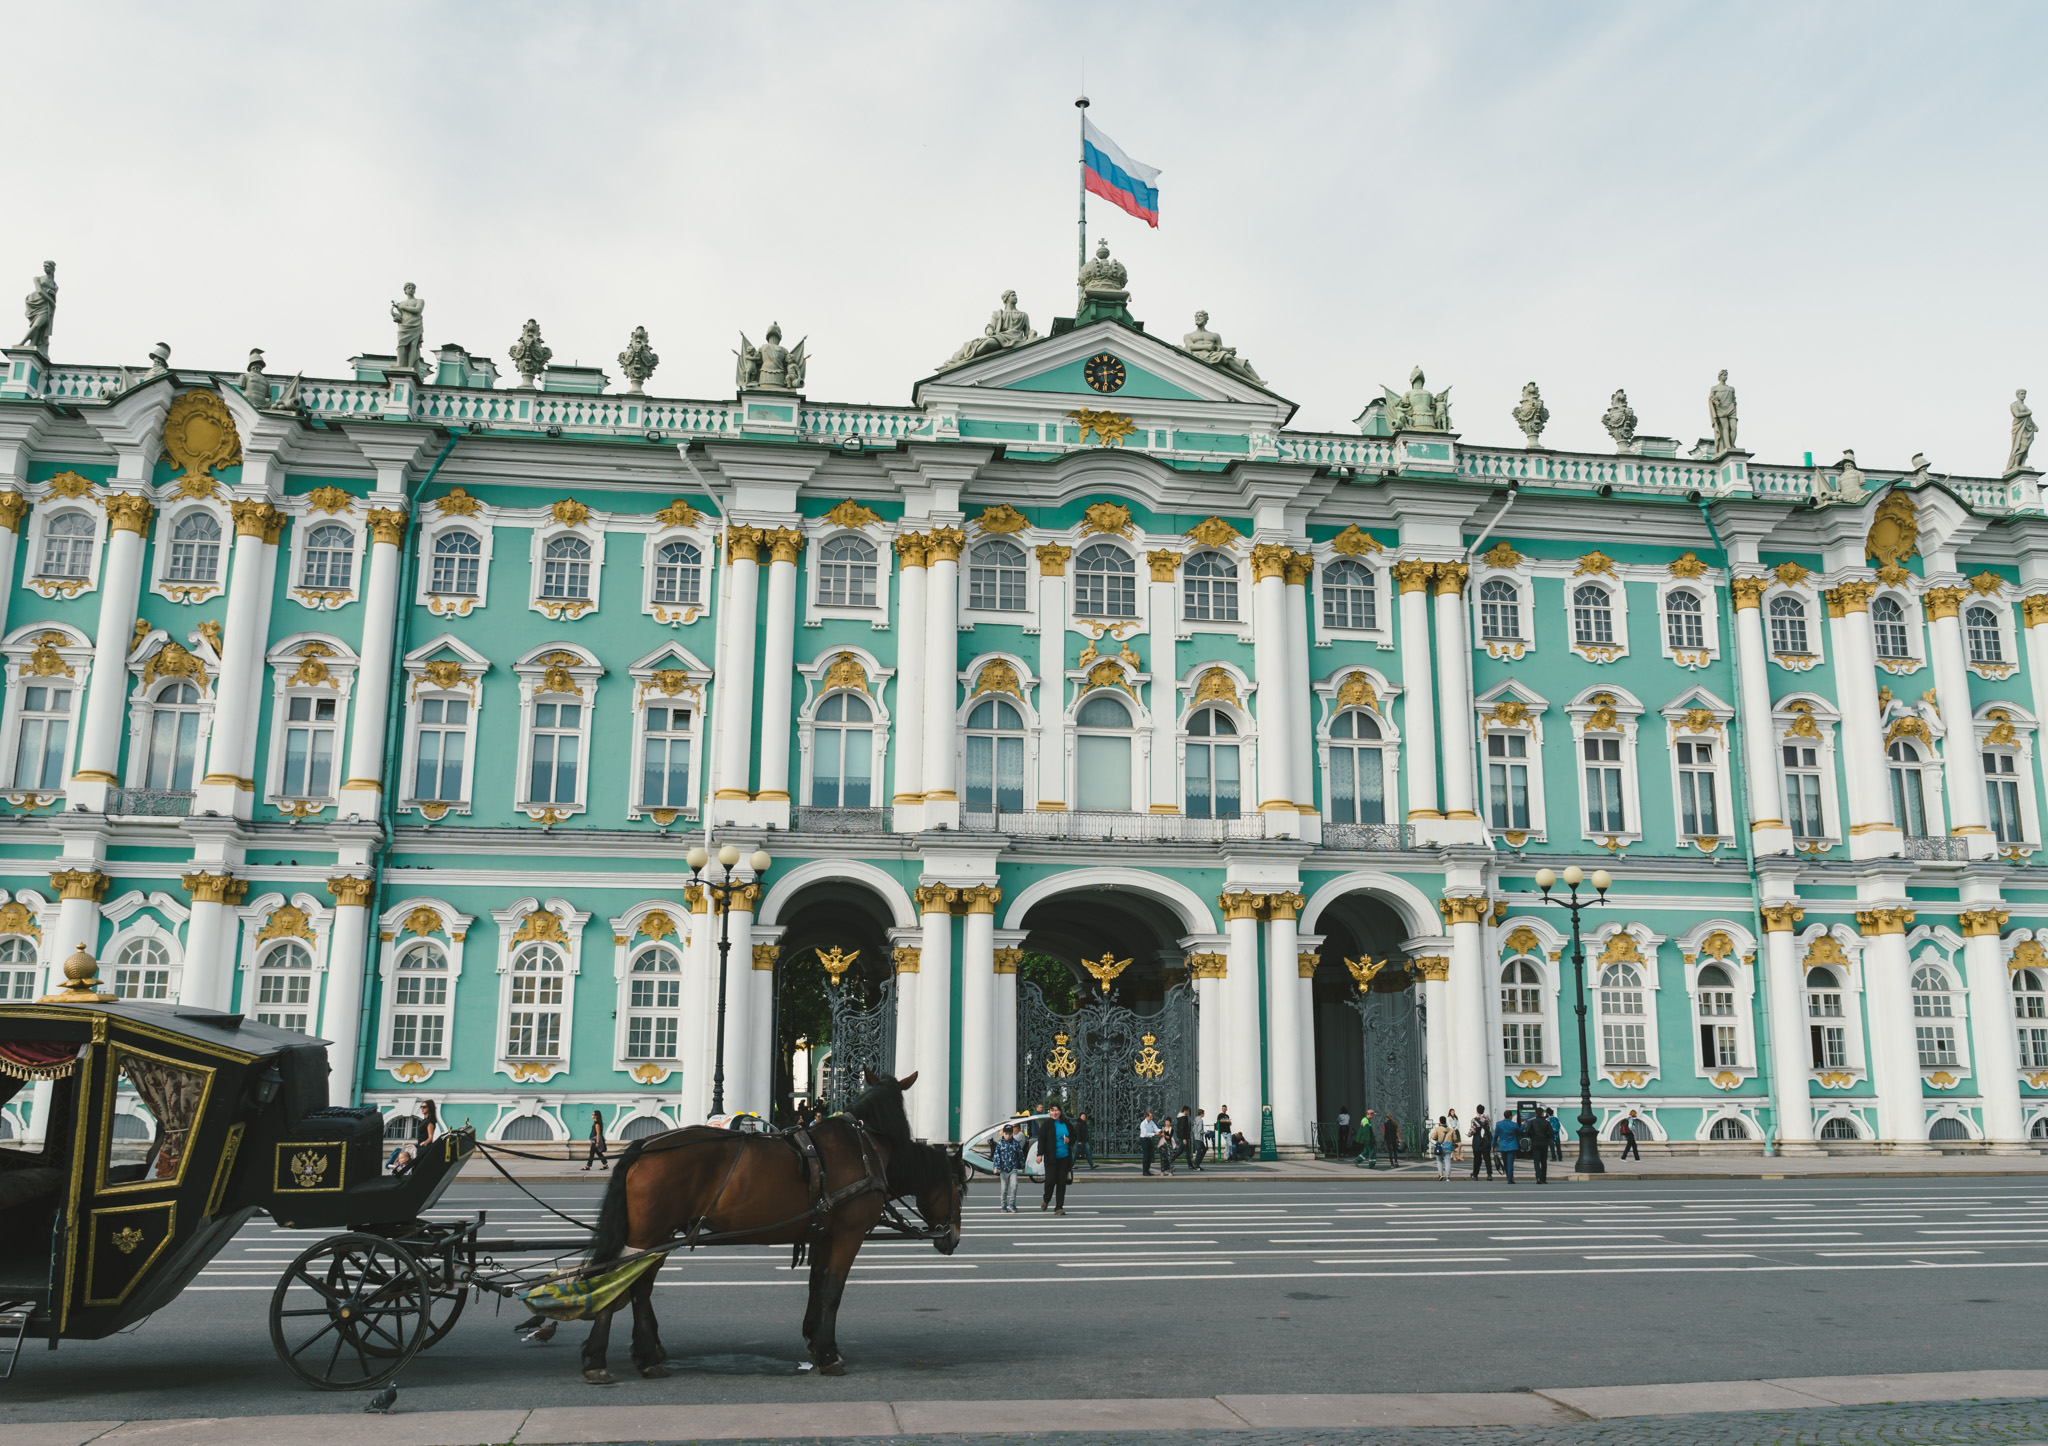 Entrance to the Hermitage Museum in Saint Petersburg